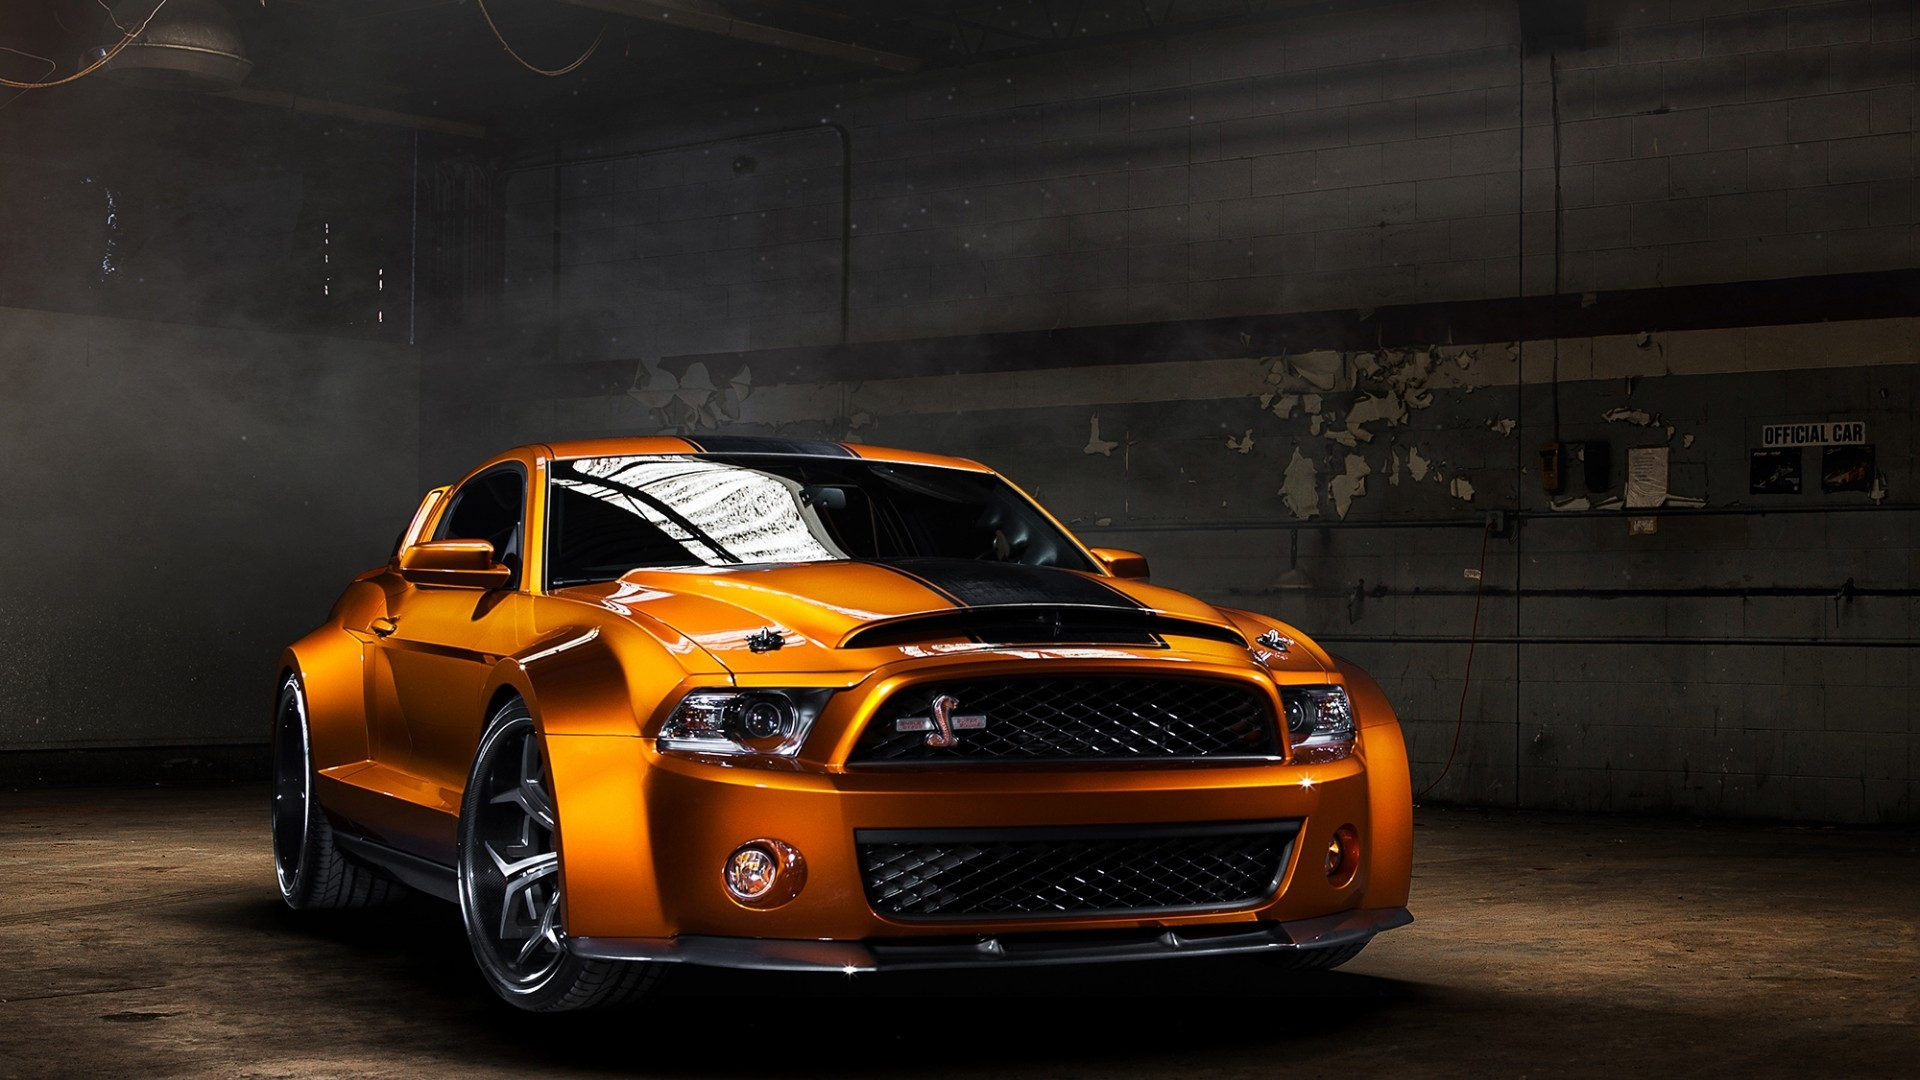 Ford Mustang Shelby Gt500 1920 X 1080 Hdtv 1080p Wallpaper